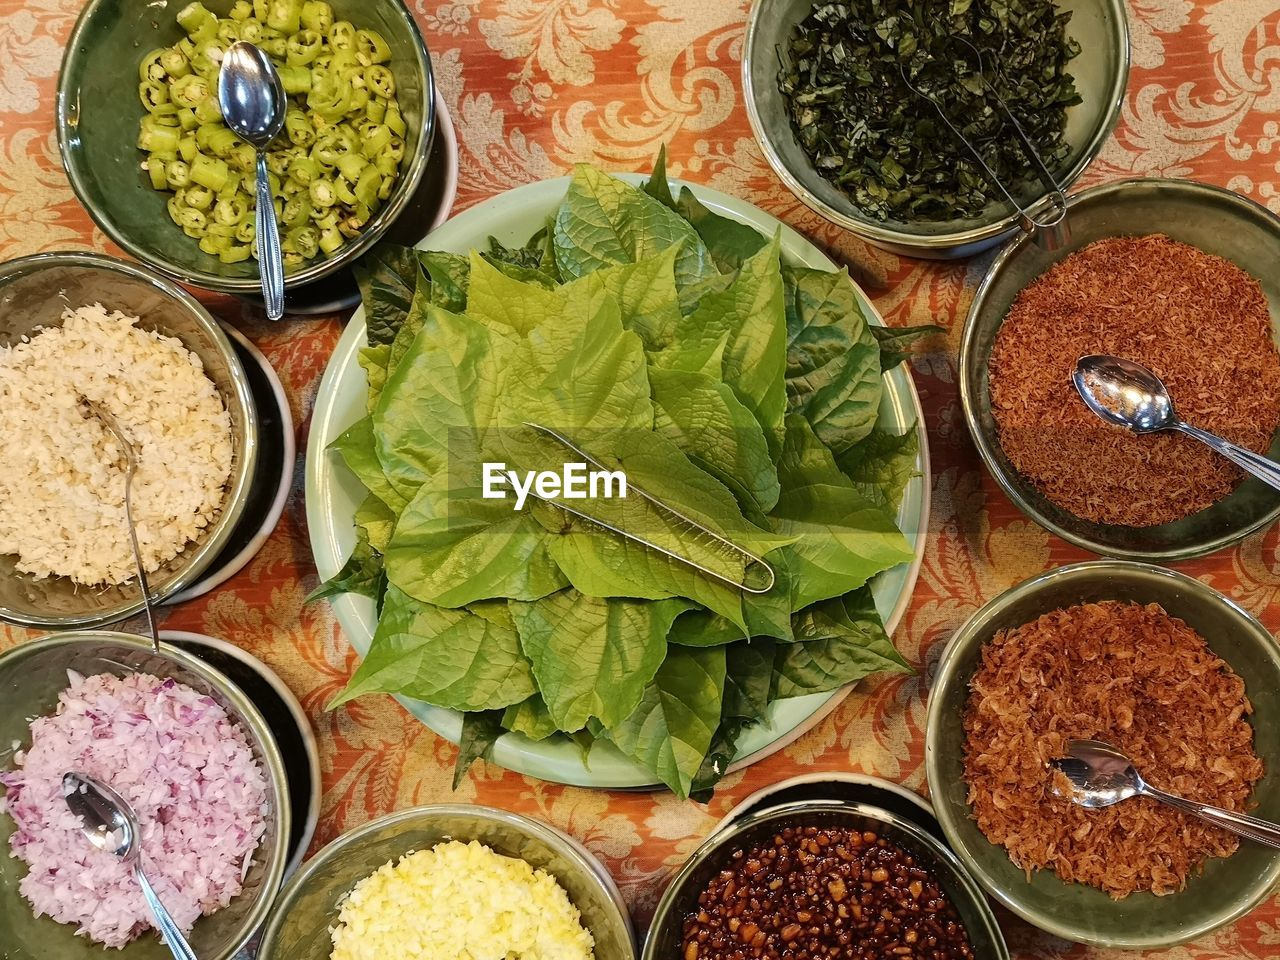 HIGH ANGLE VIEW OF VEGETABLES IN BOWL